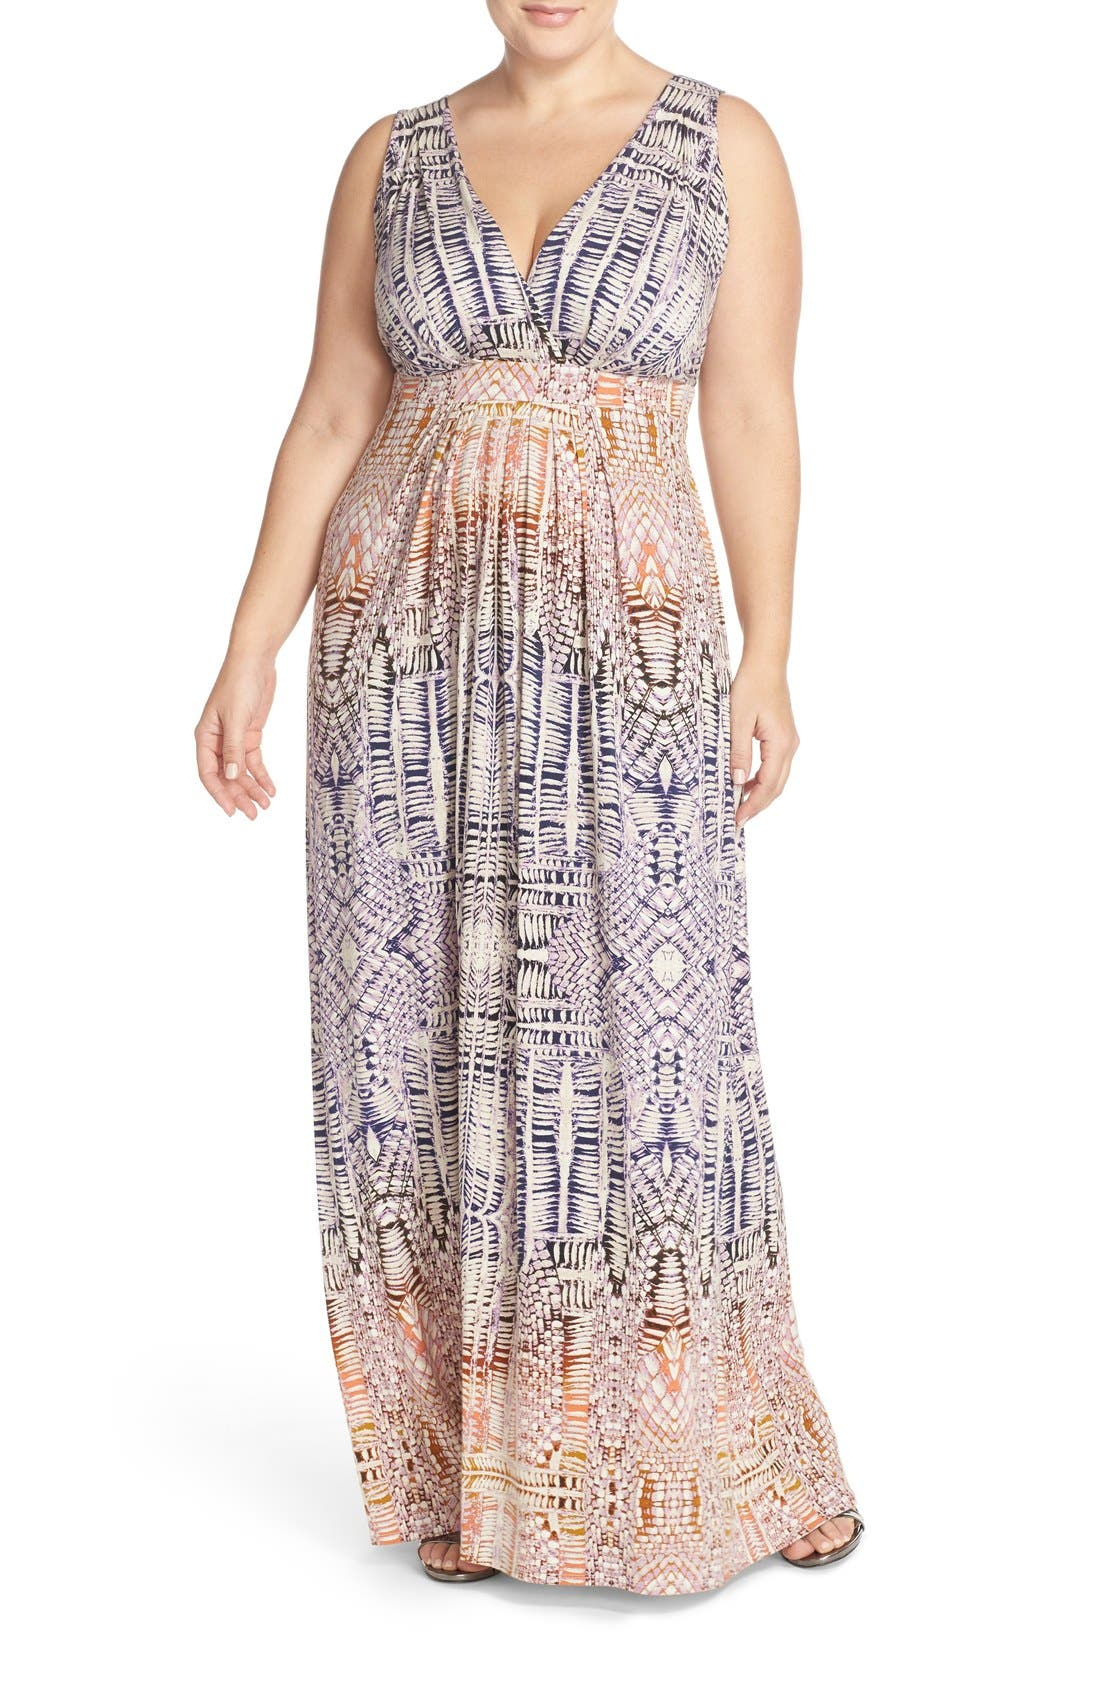 Chloe Empire Waist Maxi Dress,                             Main thumbnail 16, color,